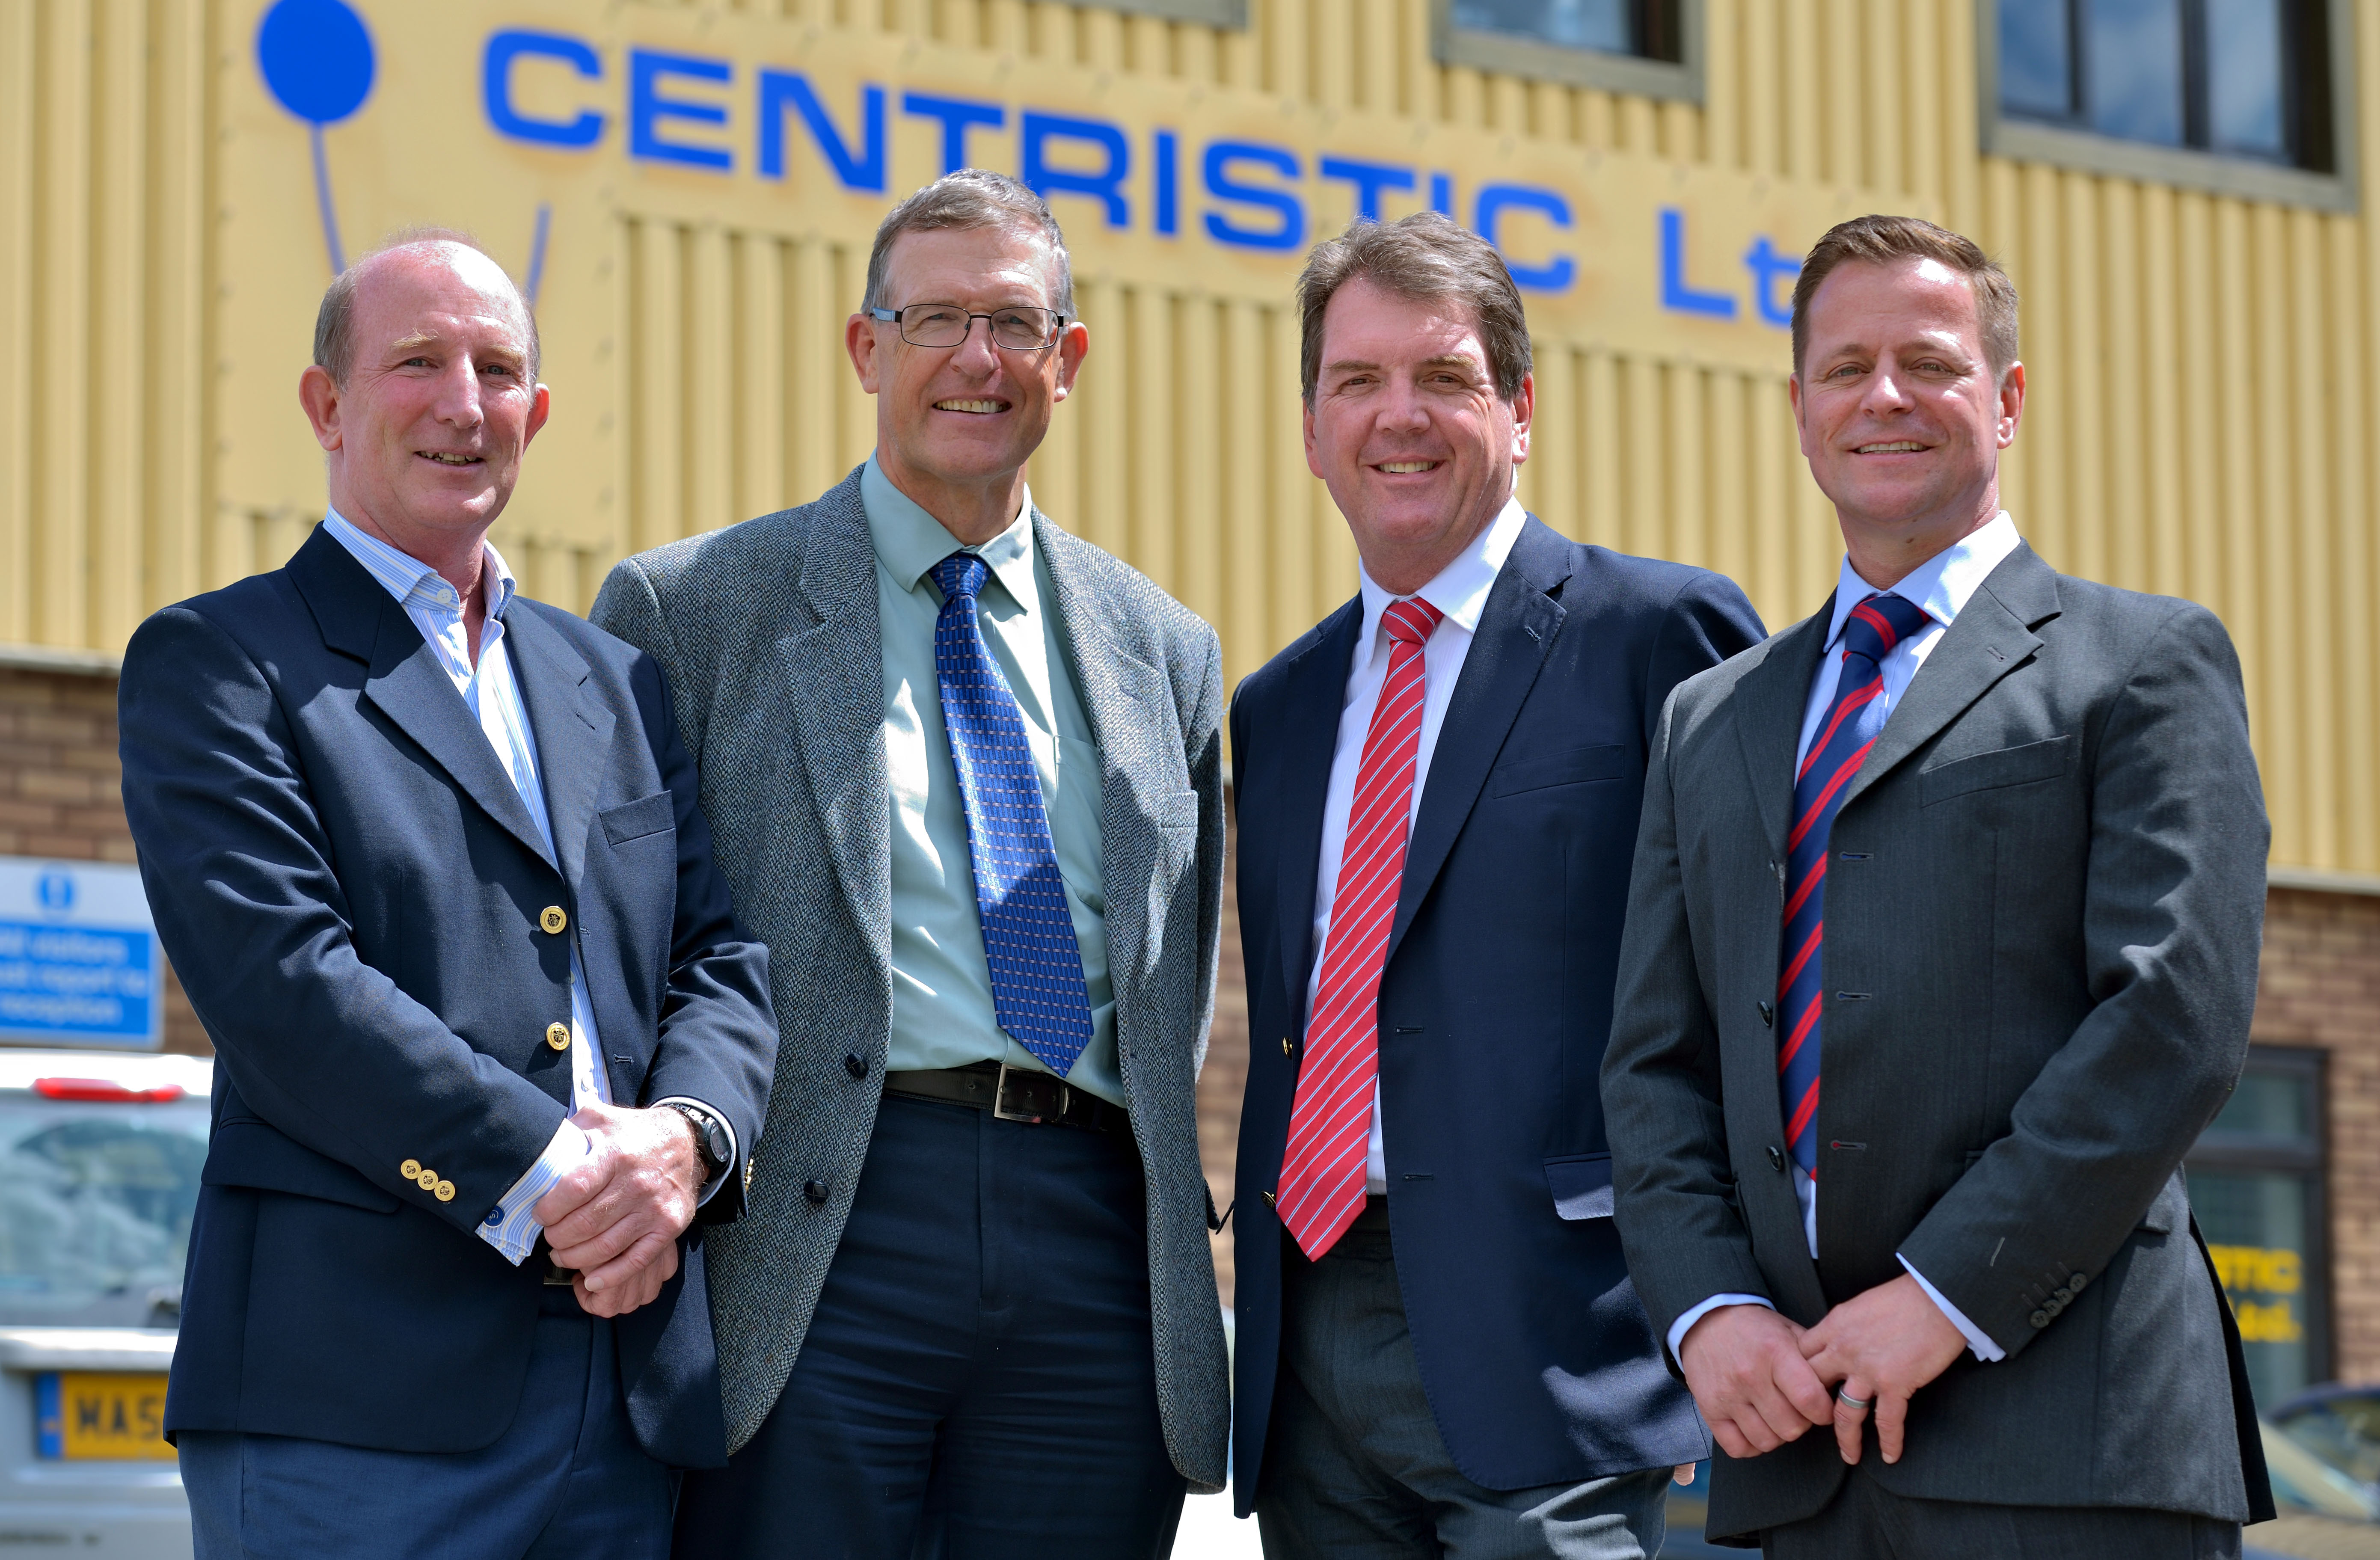 Wolf Minerals visit Centristic with BBC Spotlight